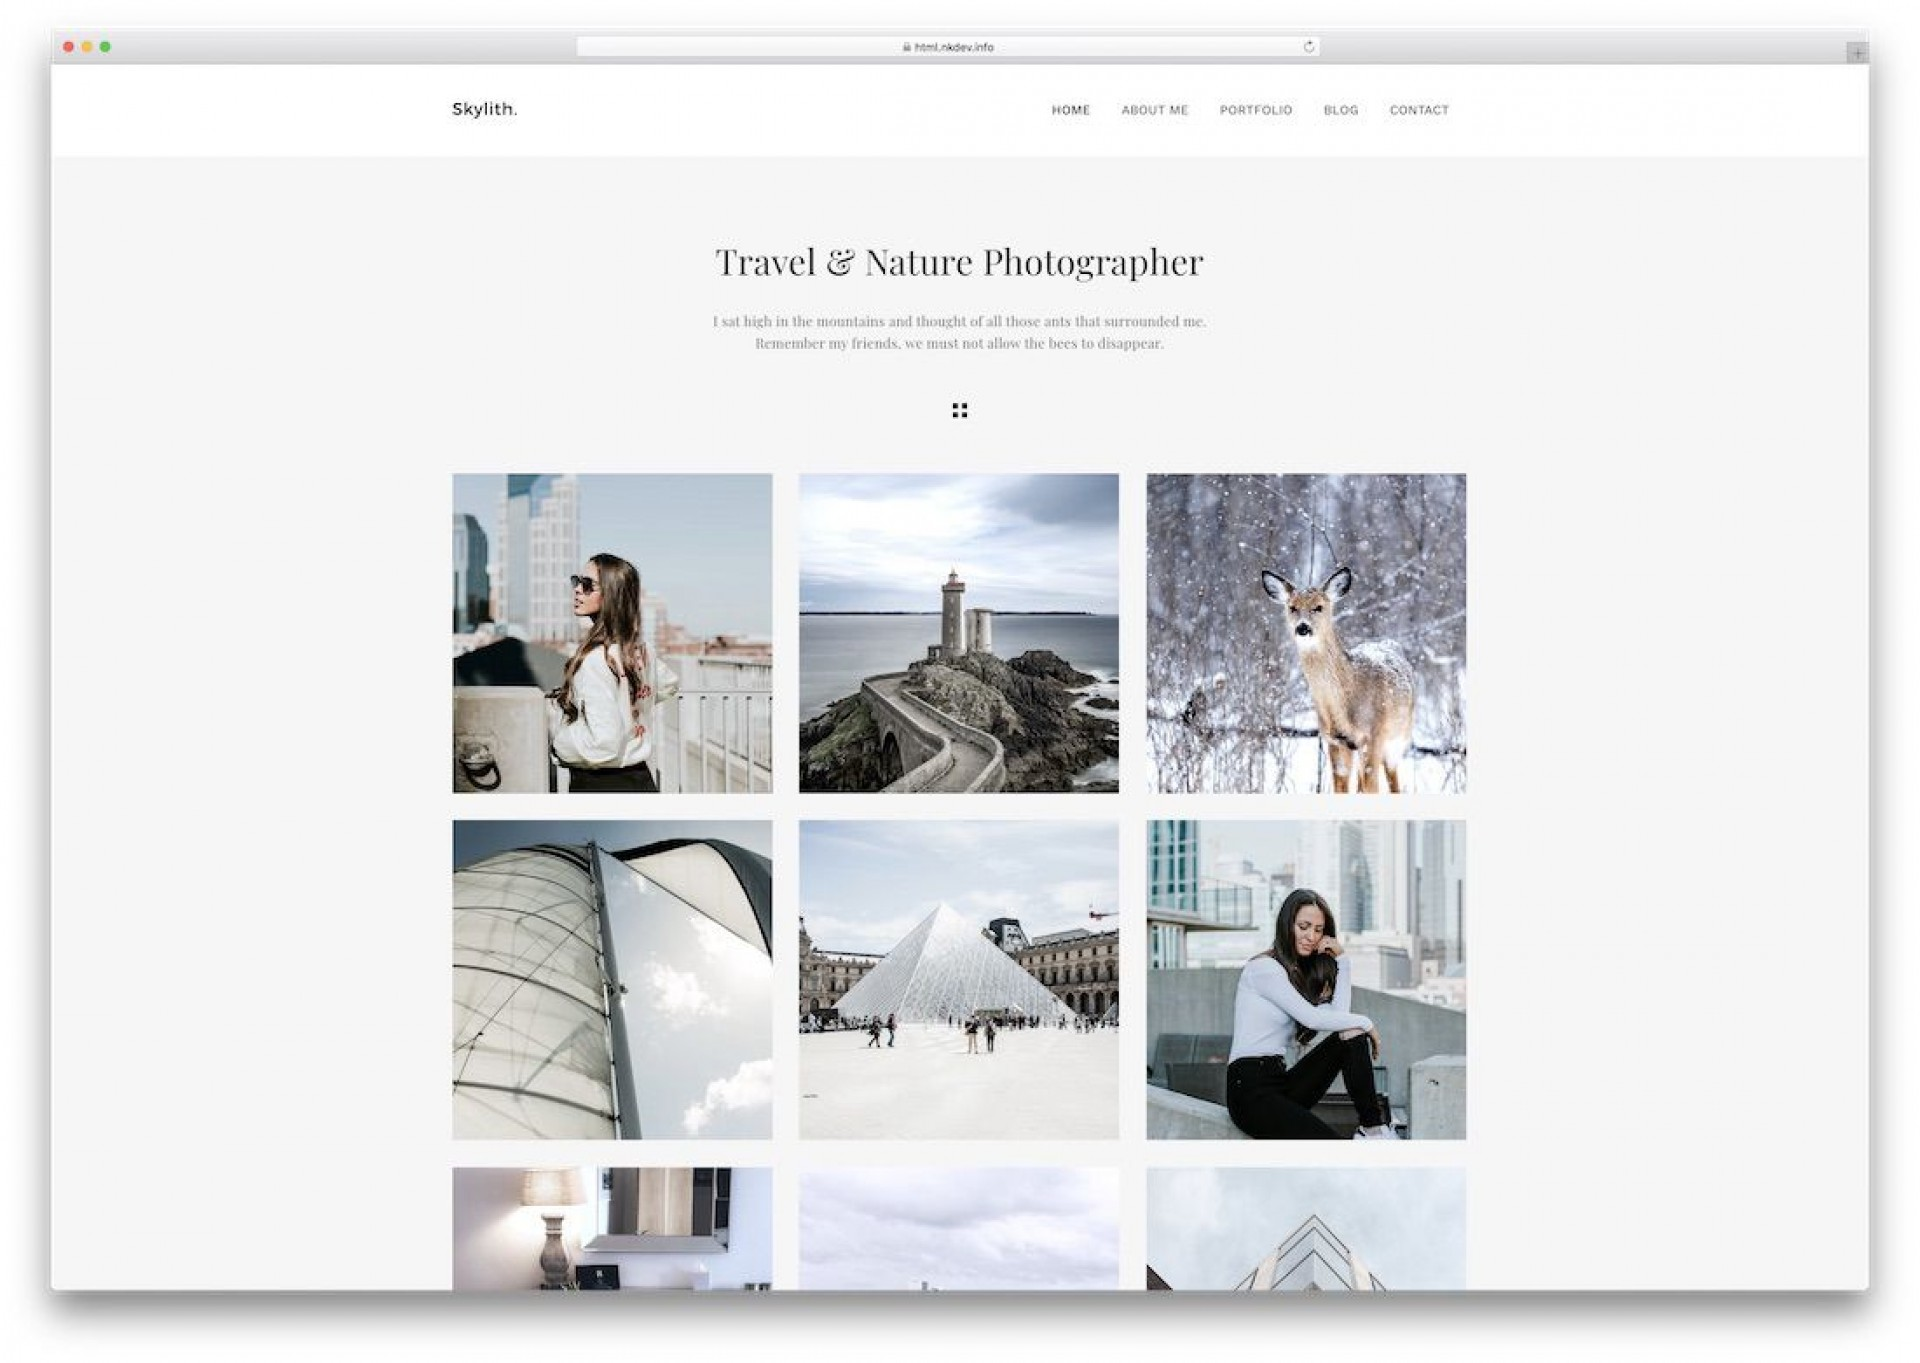 011 Incredible Website Template For Photographer High Resolution  Photographers Free Responsive Photography Php Best1920